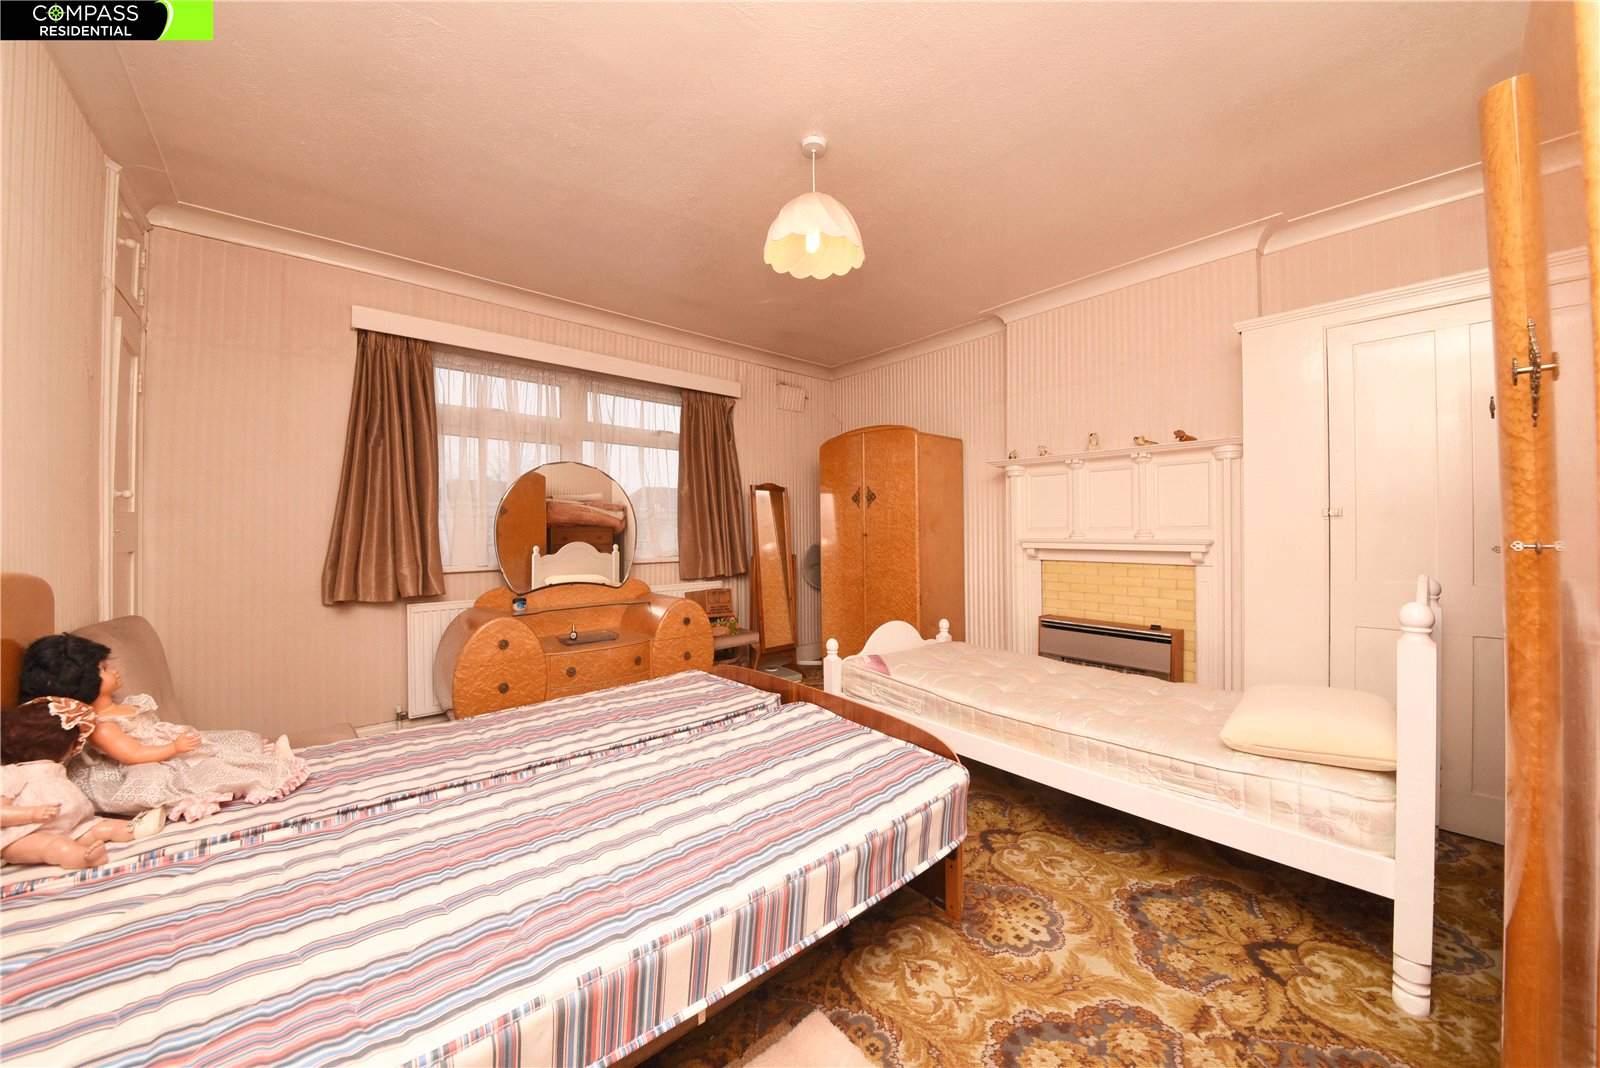 3 bed house for sale in Whetstone, N20 9PT 9